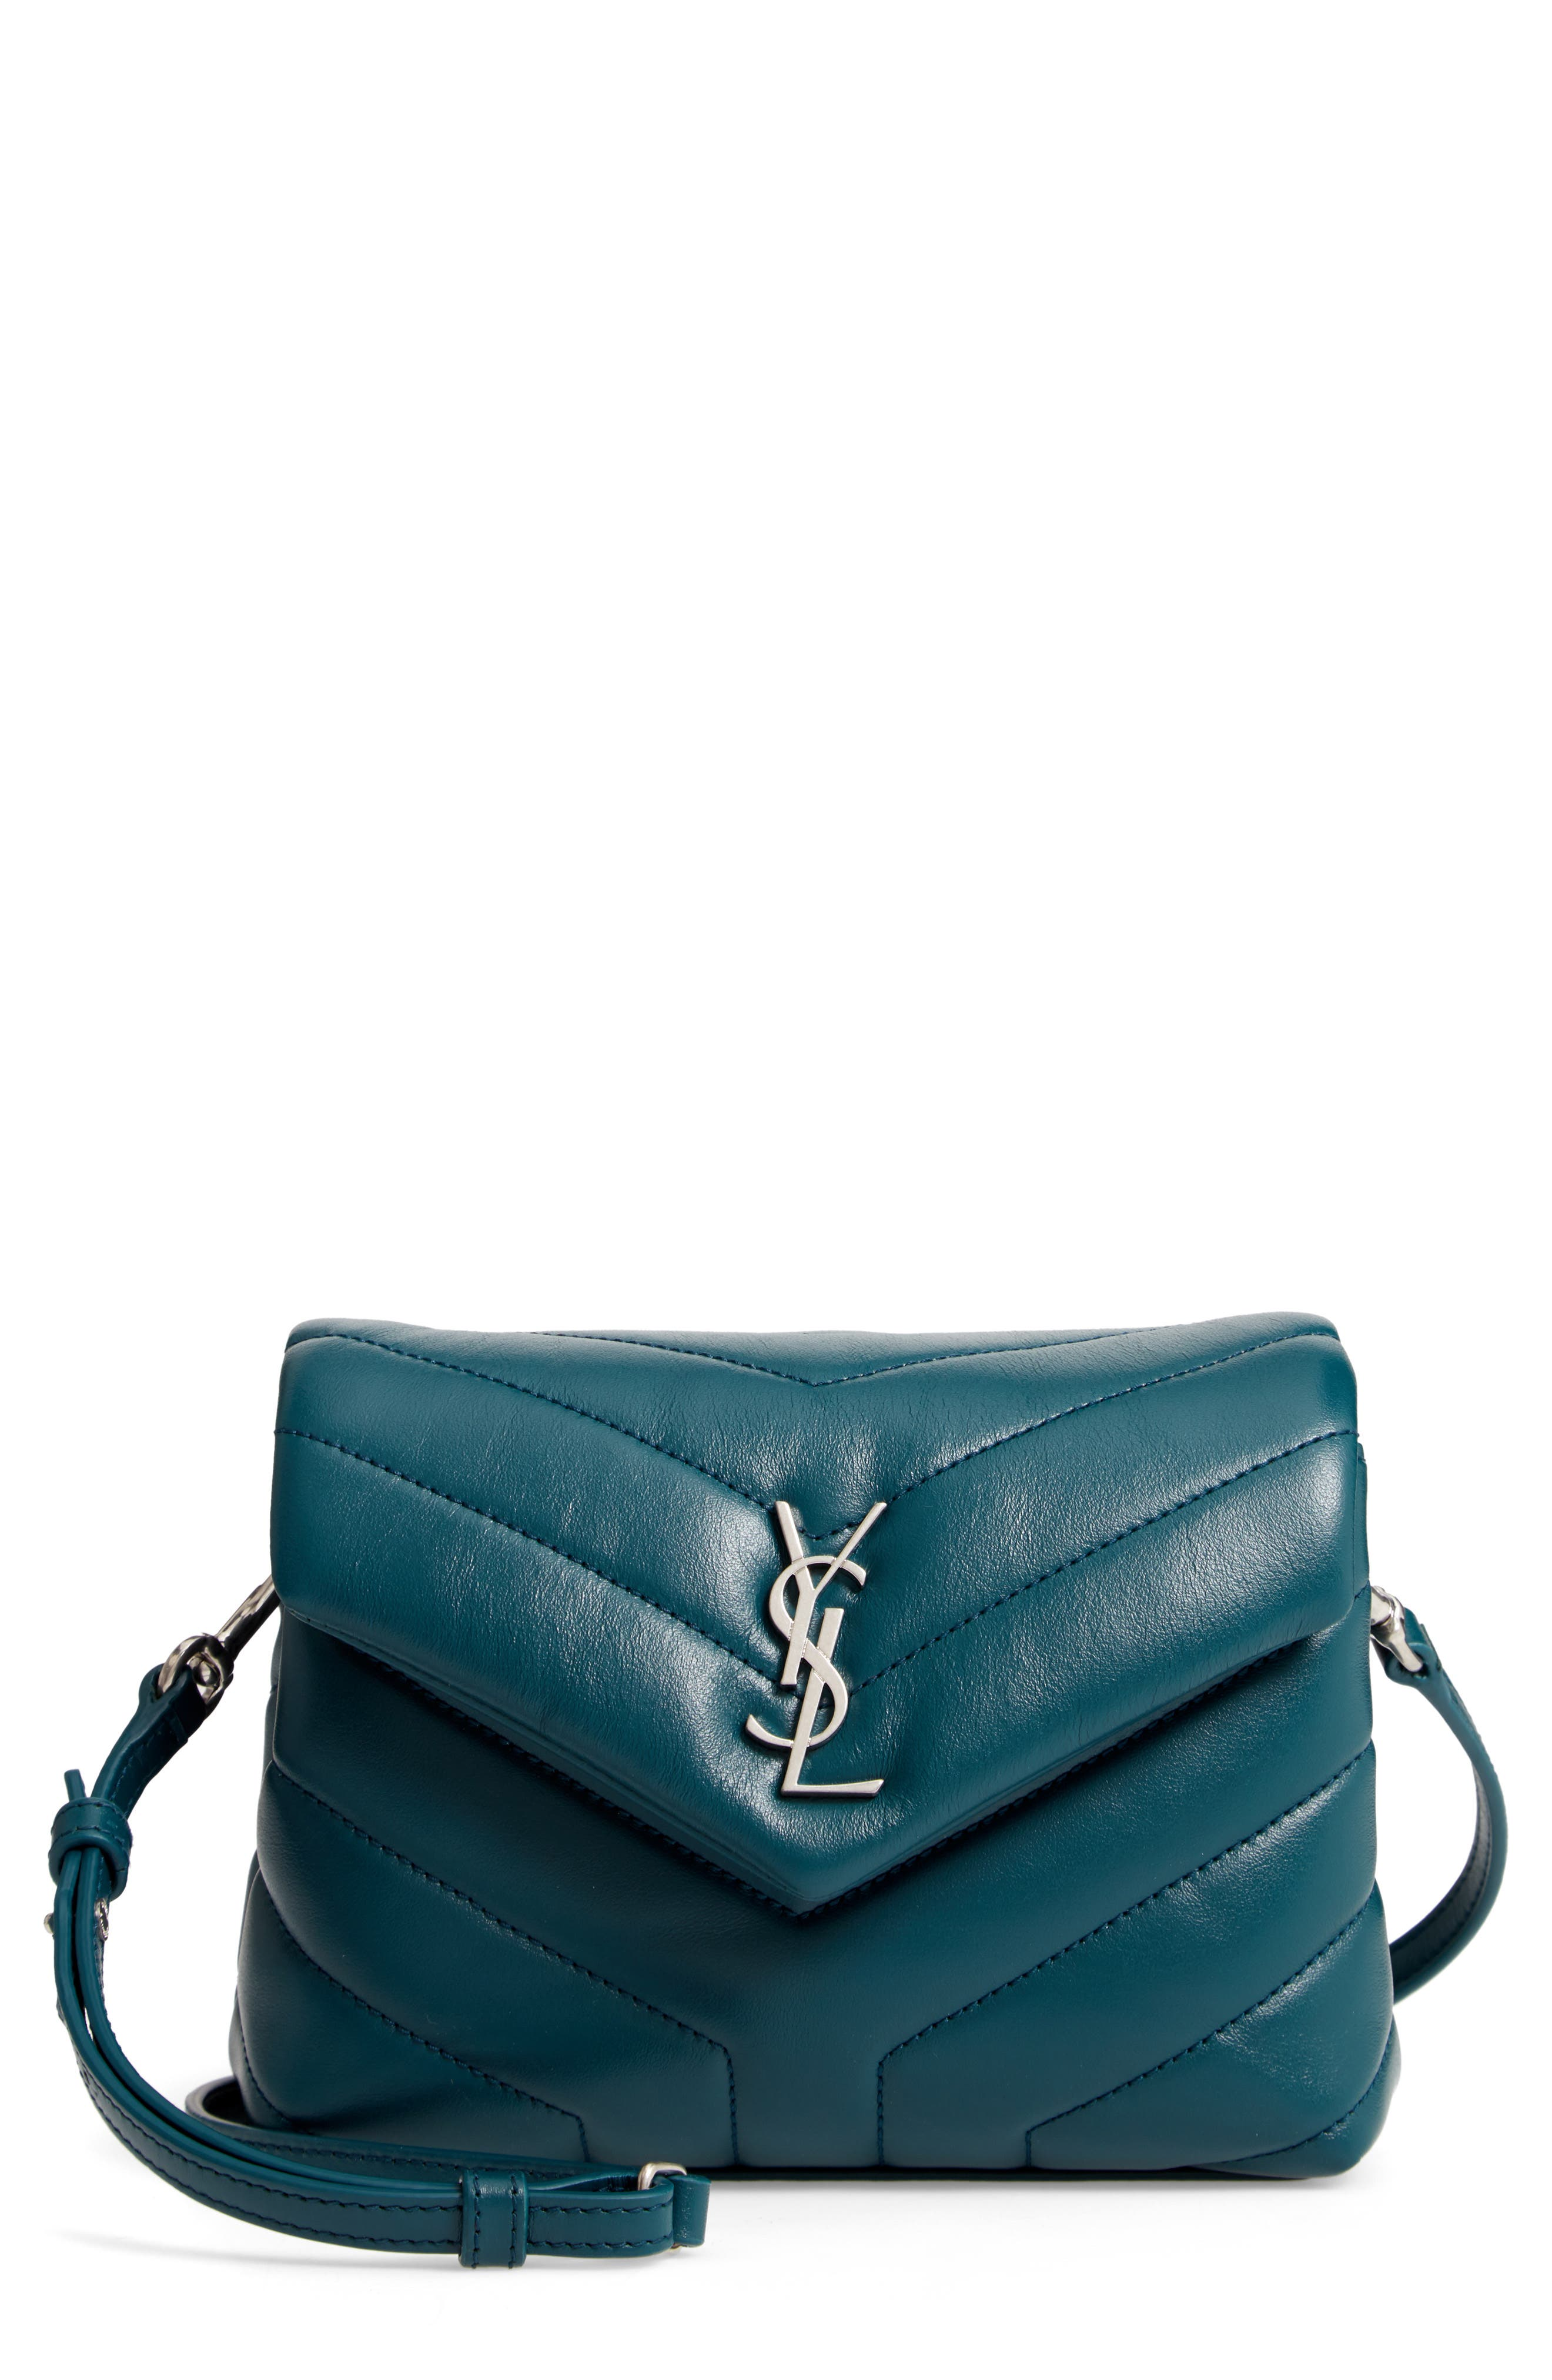 Toy Loulou Calfskin Leather Crossbody Bag in Dark Turquoise